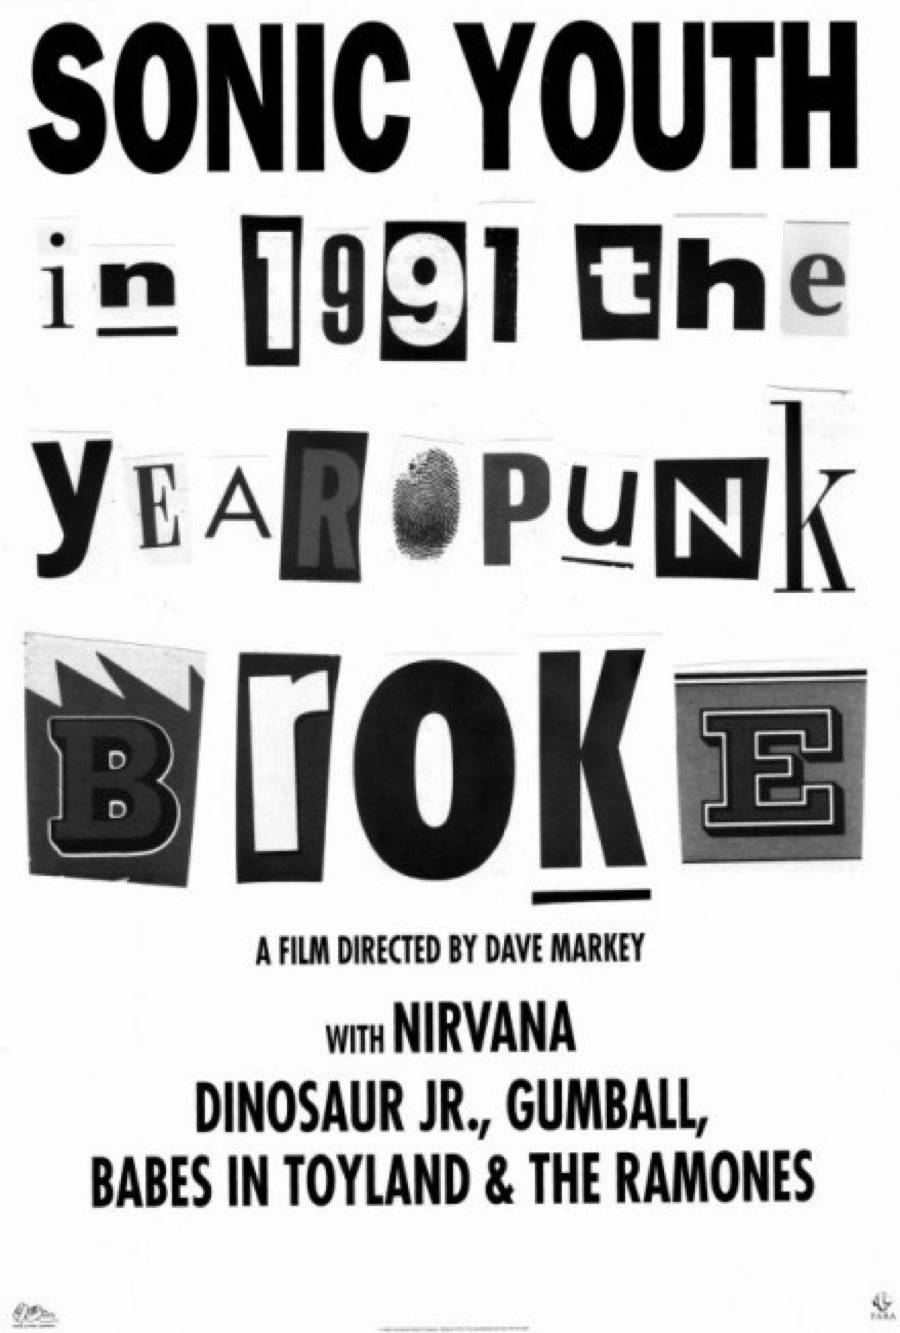 1991-the-year-punk-broke-movie-poster-1992-1020235213